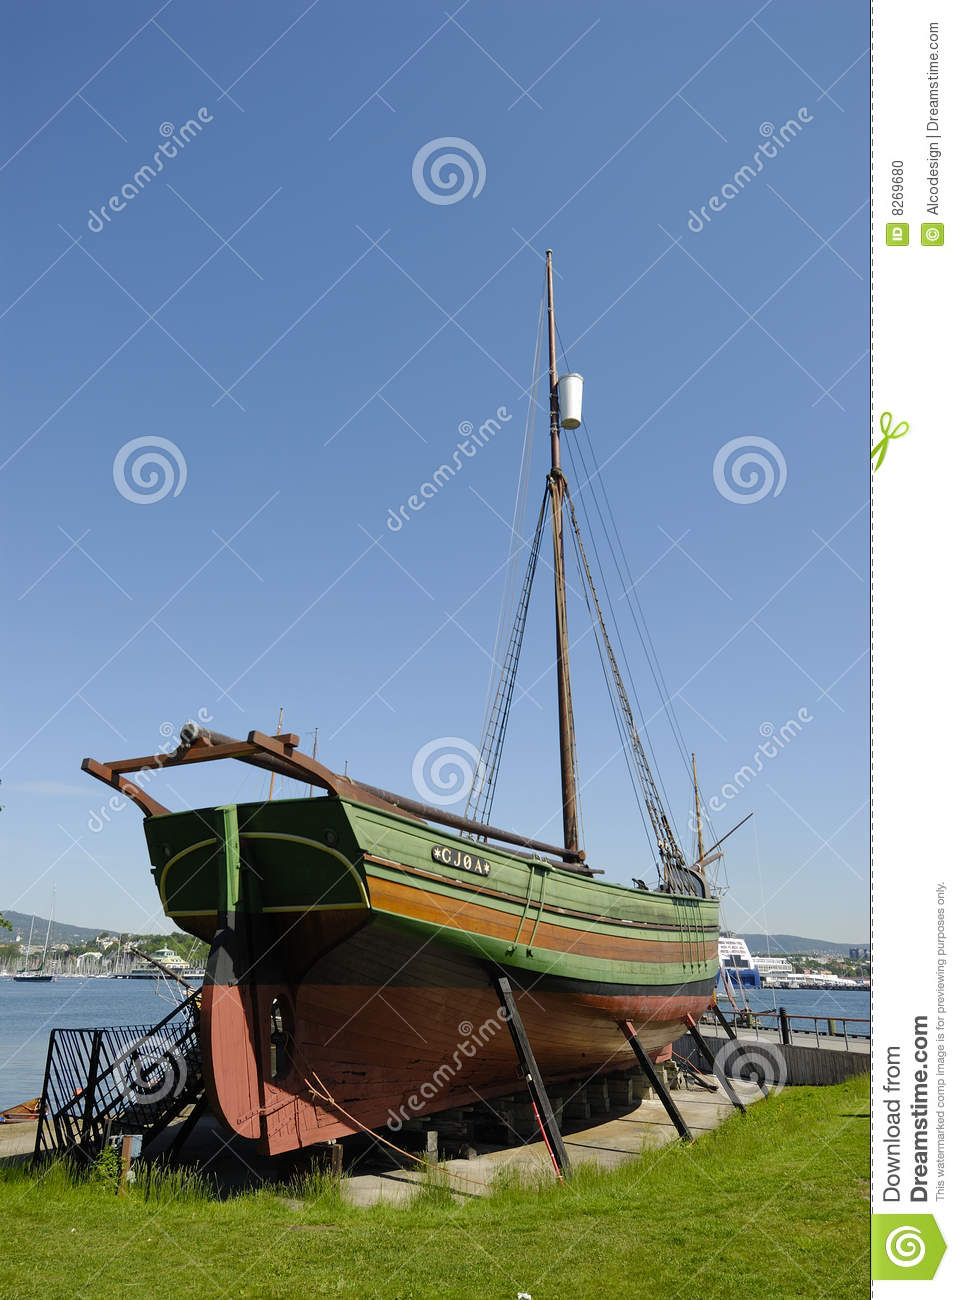 Old boat in dry dock stock photo. Image of wooden, water - 8269680